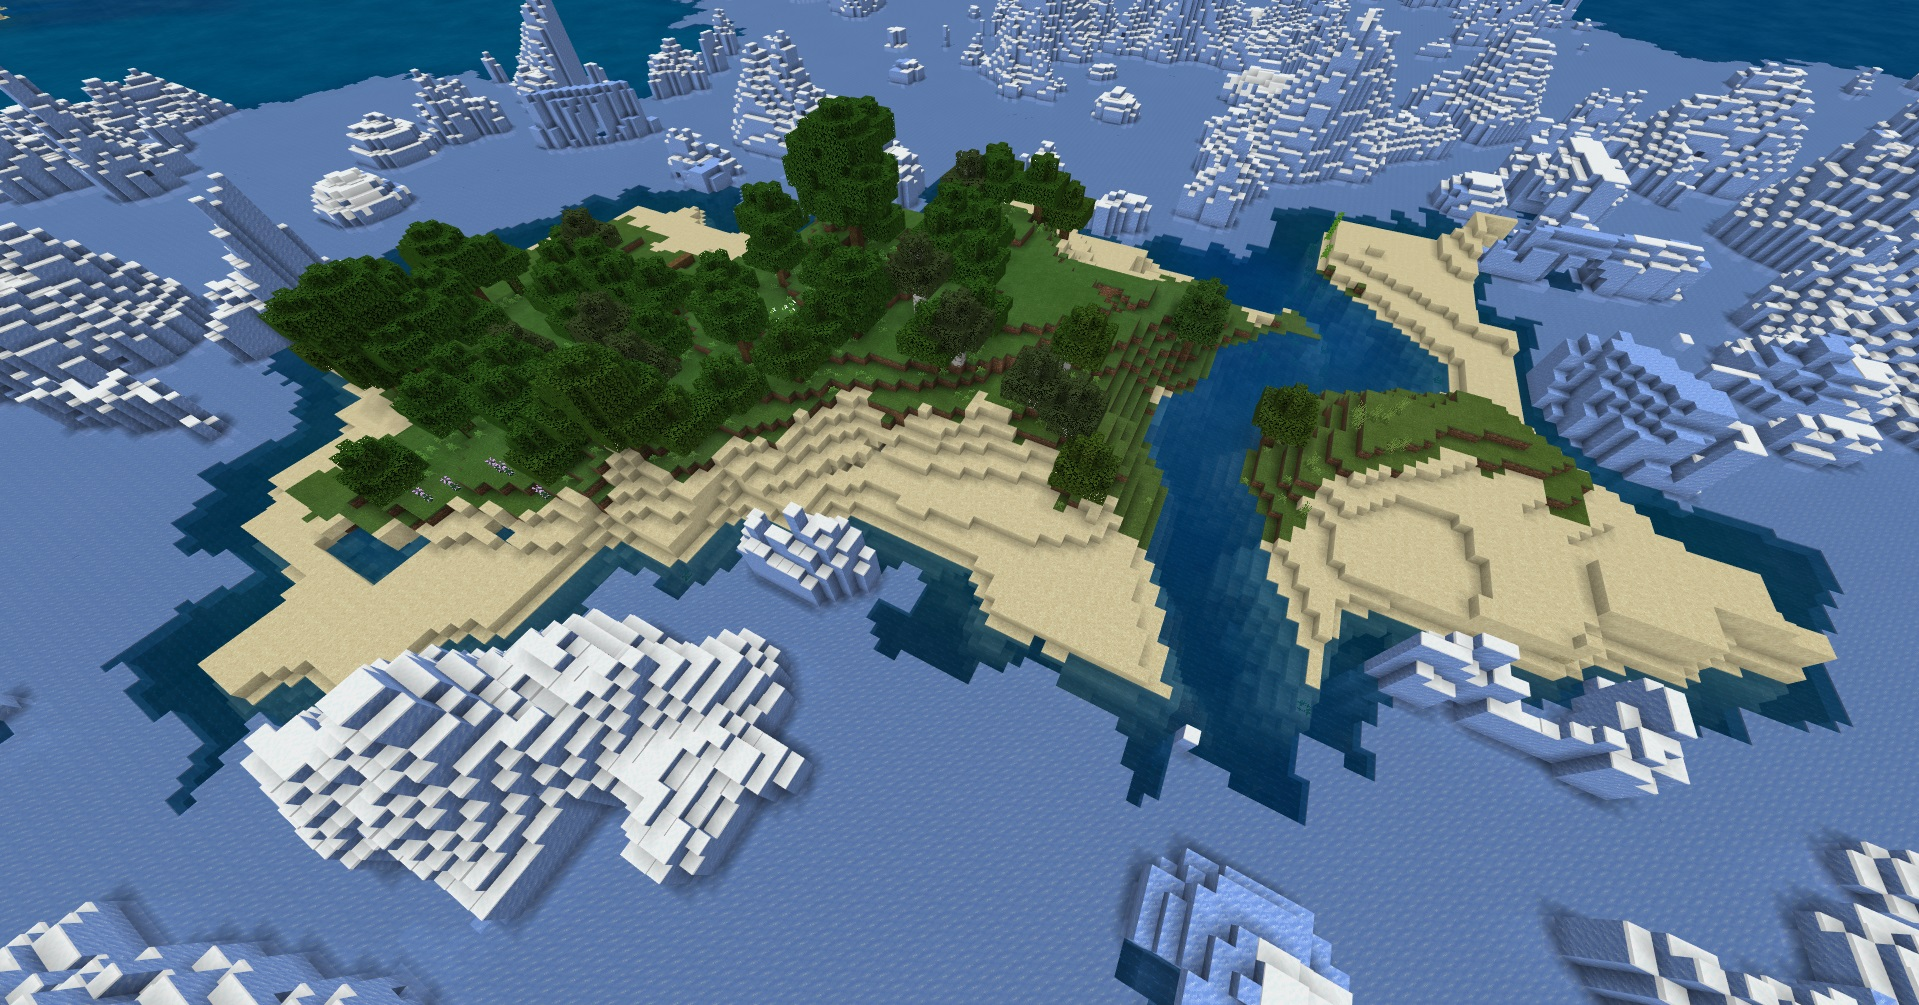 Minecraft seed bedrock and pocket edition - An aerial view of a medium-sized island with a small forest and beaches surrounded by an icy ocean tundra